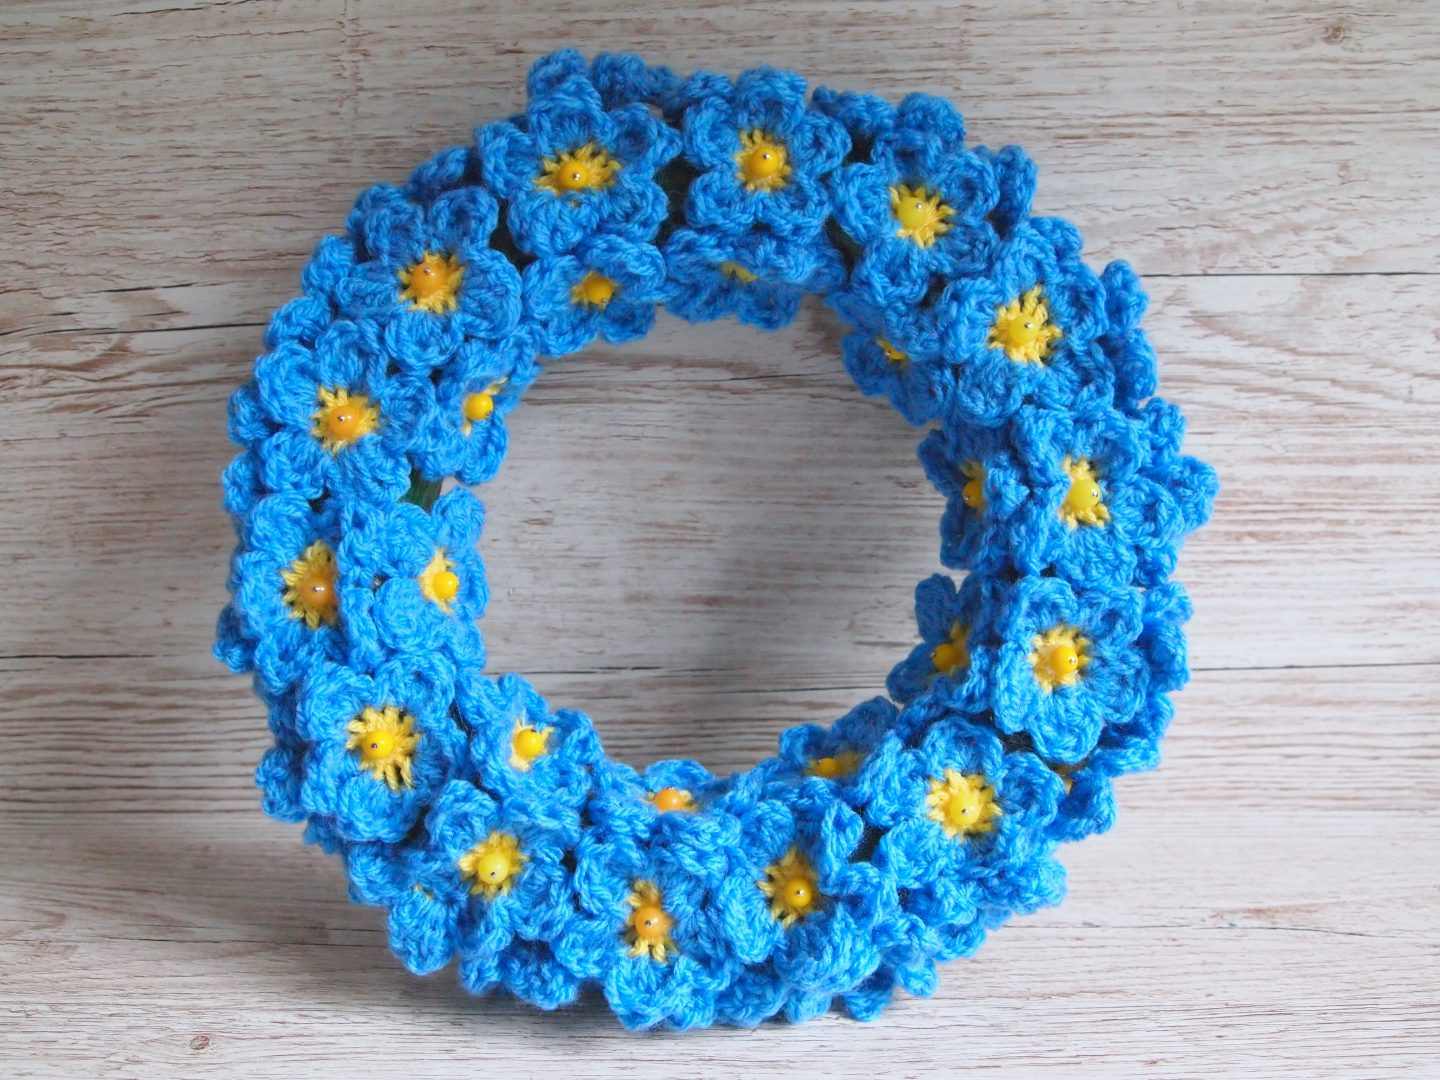 the finished forget me not crochet wreath